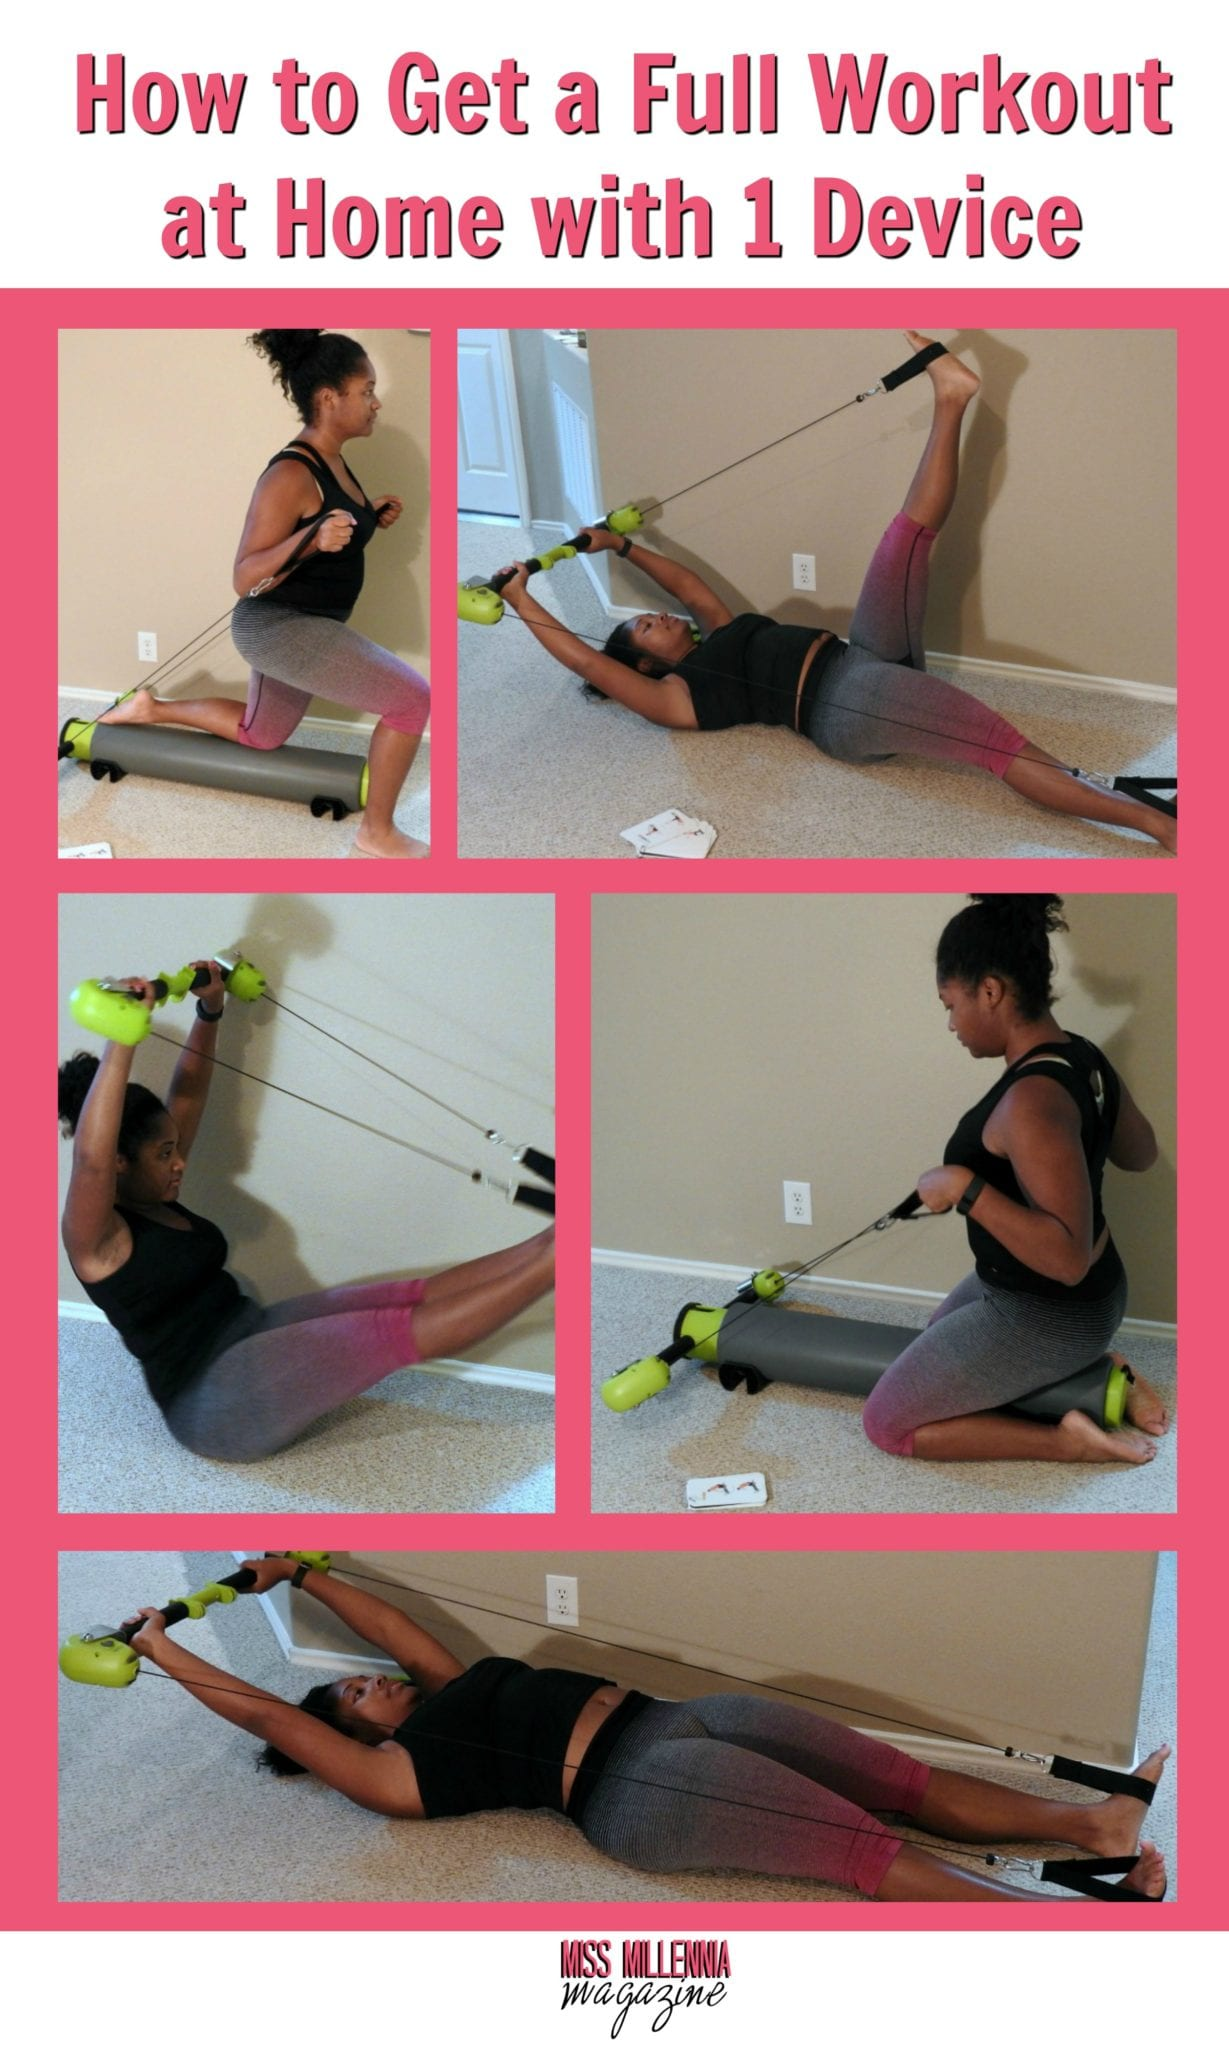 Want to learn a how to do a home workout without spending a fortune on equipment? Check out my tips! #BBMOT #ad